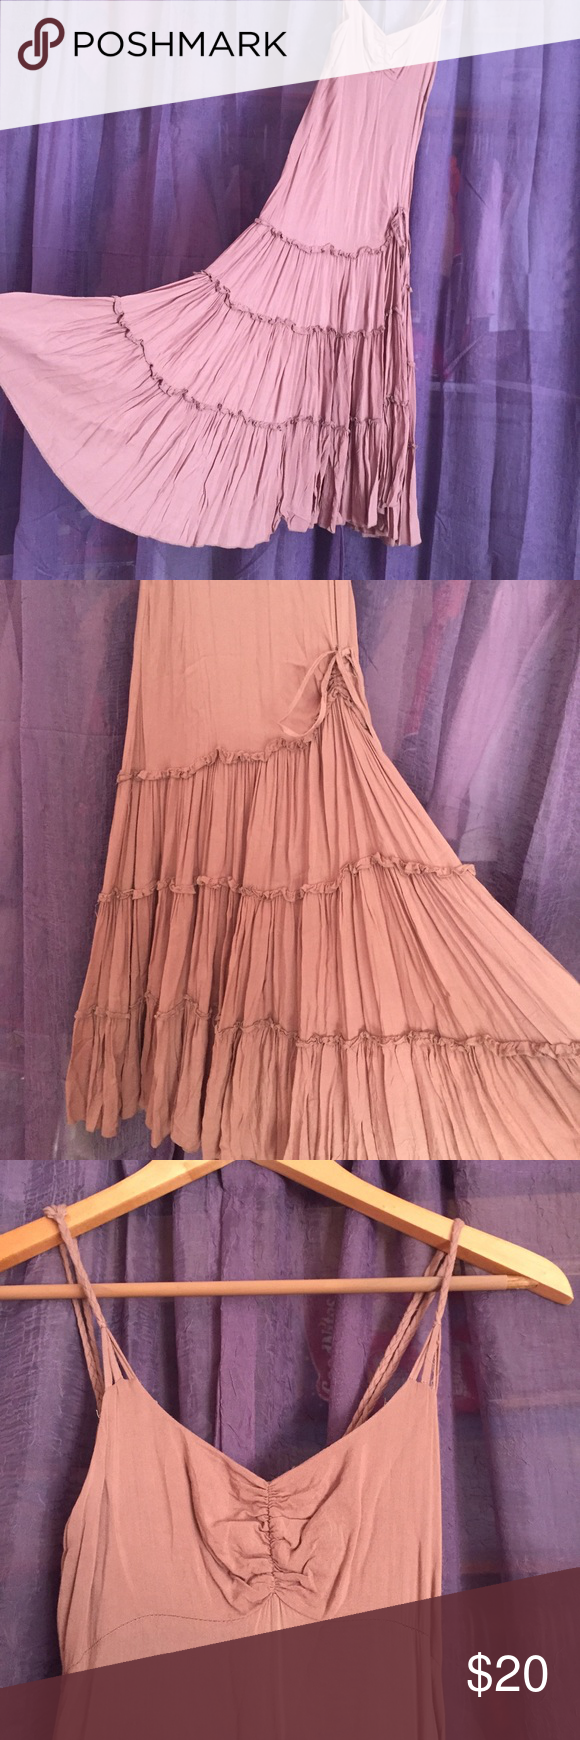 Taupe beige summer dress Effortlessly boho maxi with its beautiful tone and layered bottom. It also has functional ruching around the hips for a touch of accent. Braided shoulder straps are adjustable. Semi-sheer but I had no problem just wearing nude undergarment. Dresses Maxi